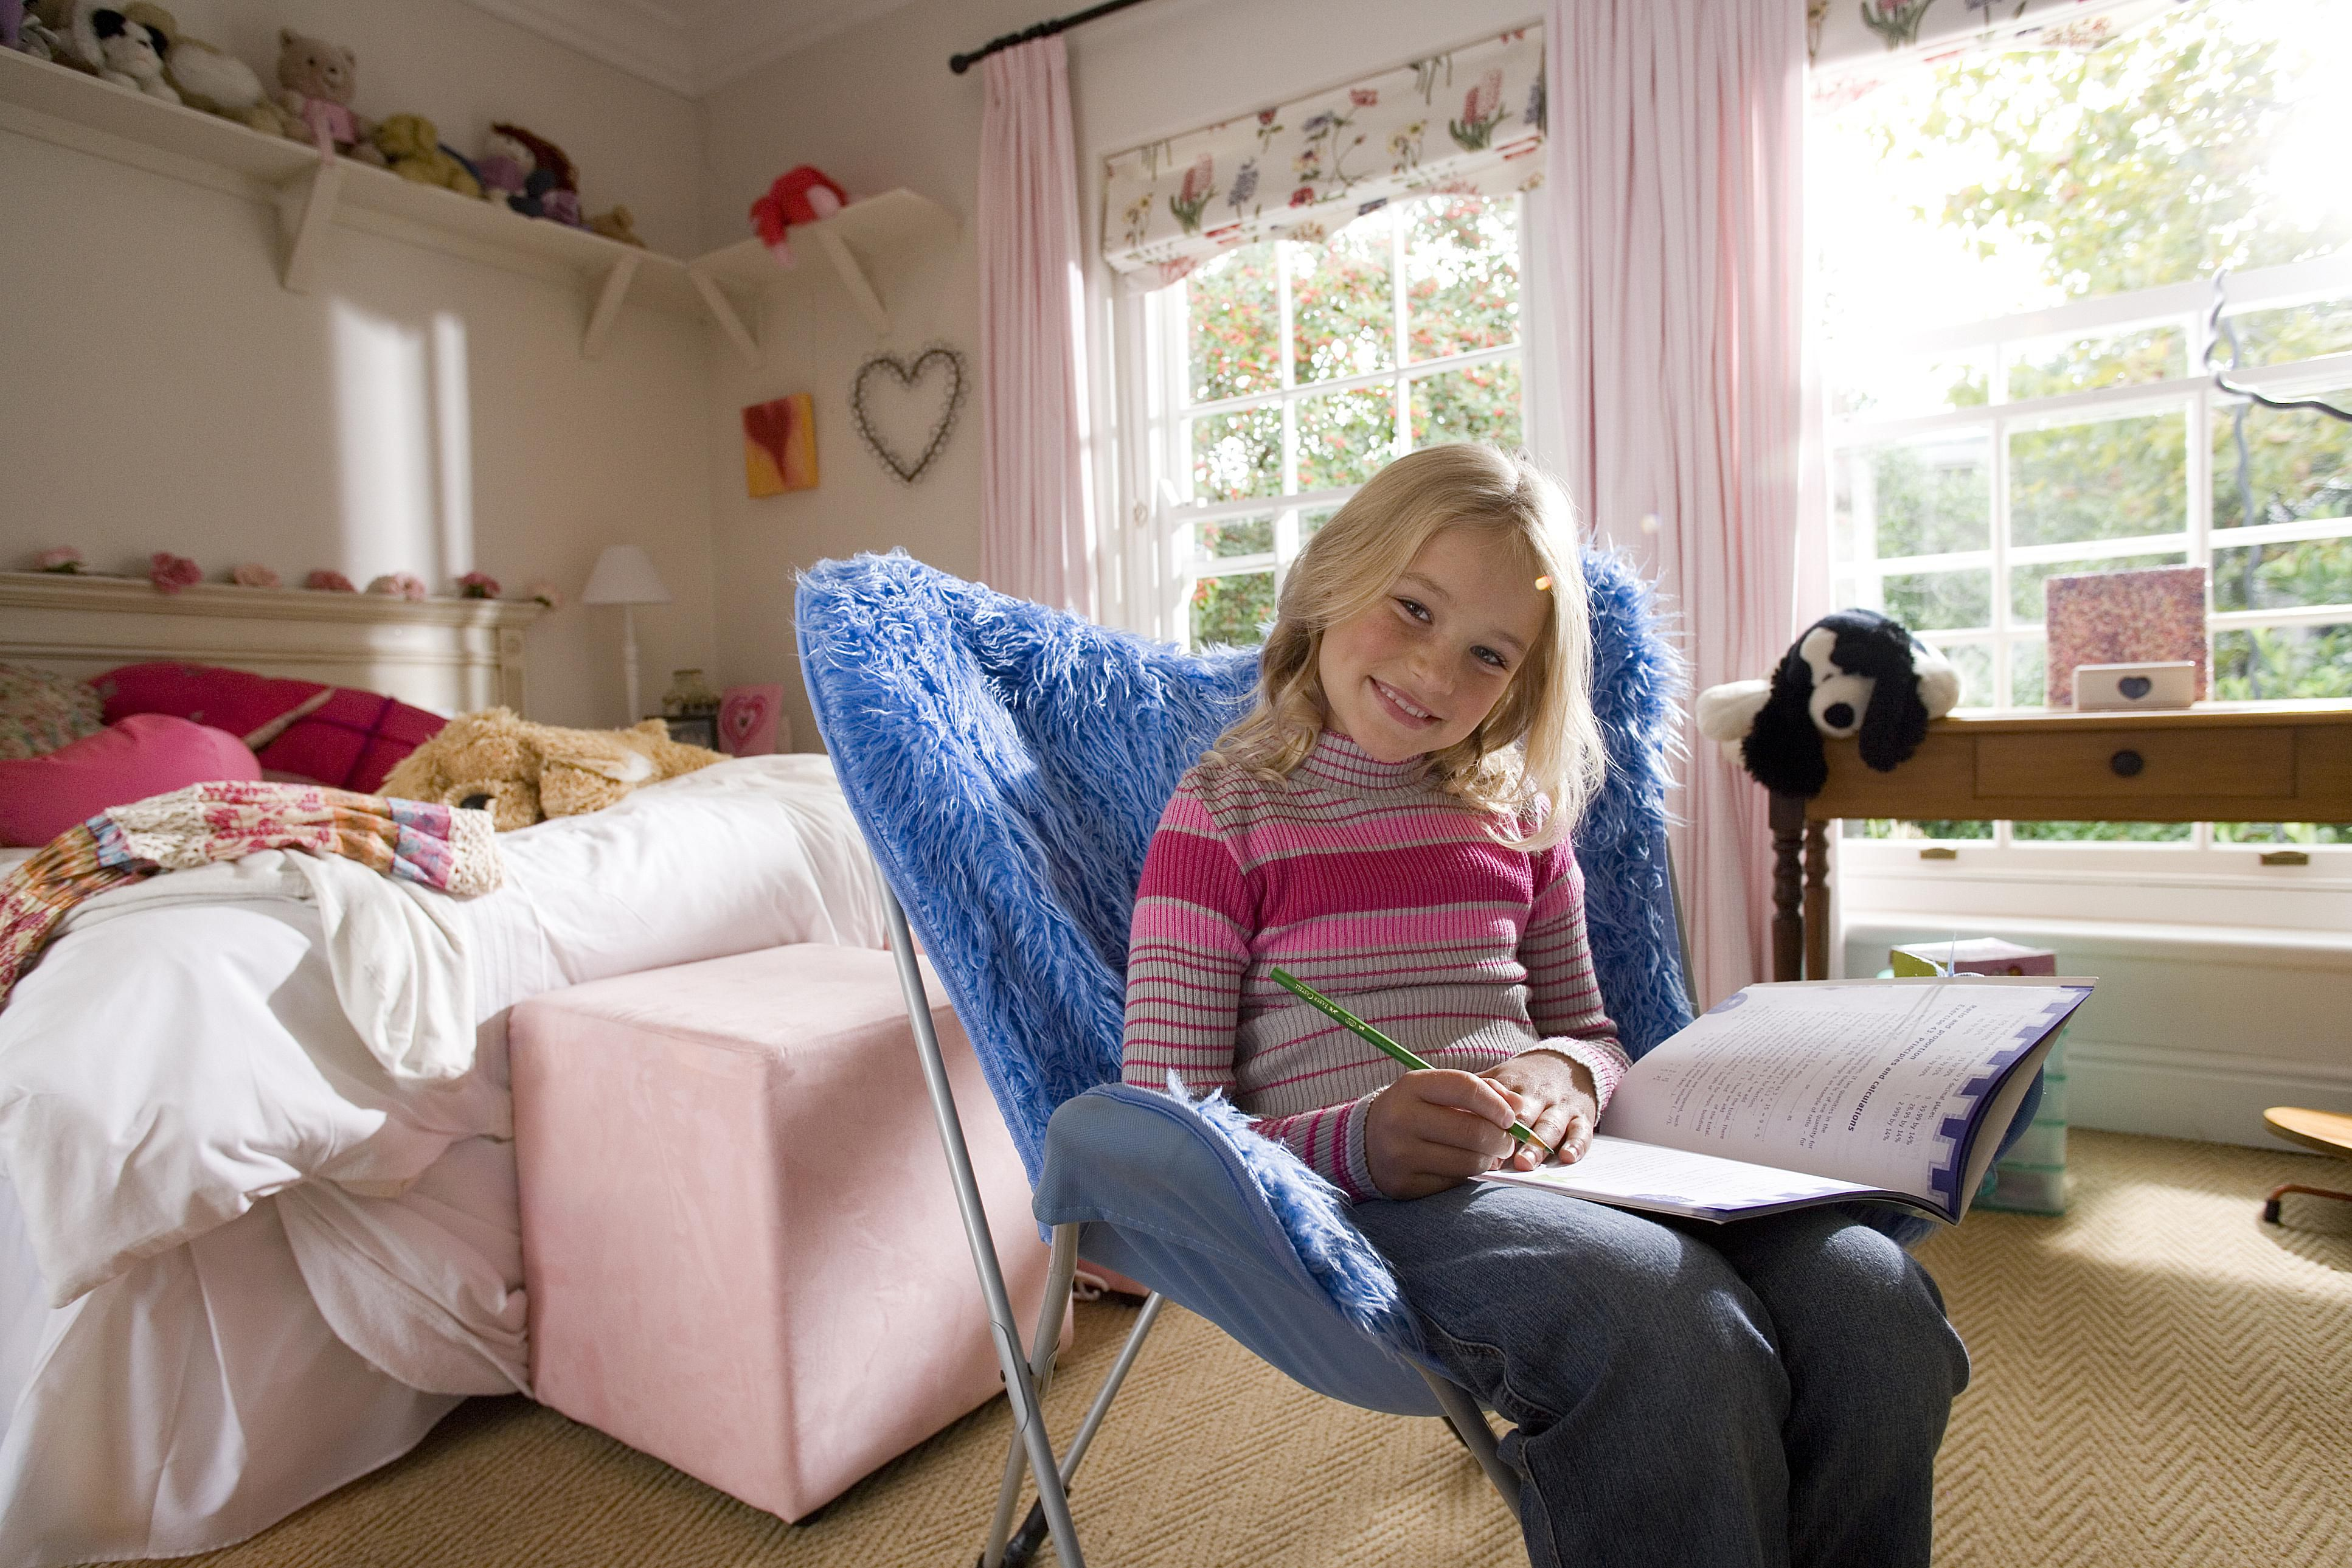 A girl writing in a notebook in her room.